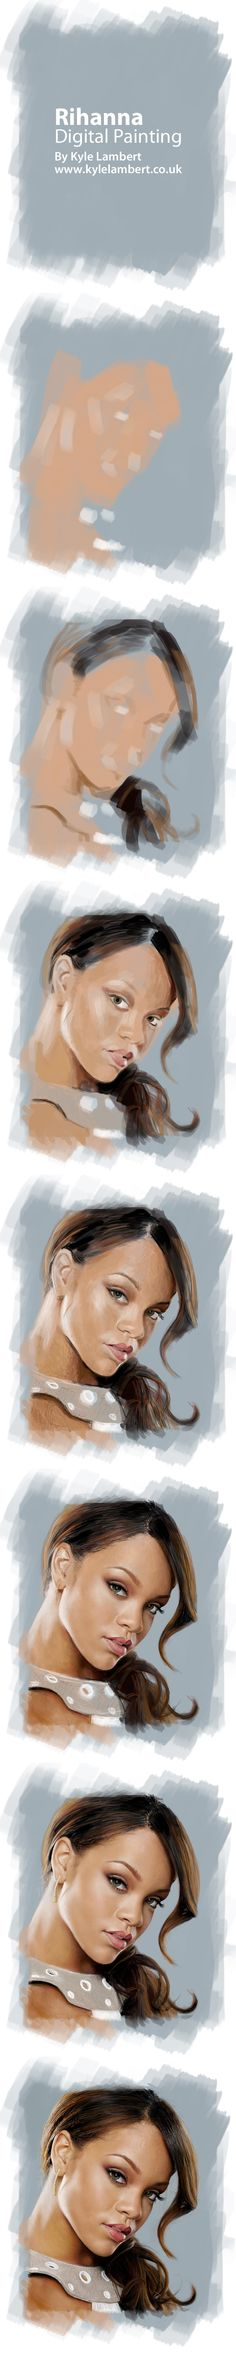 Rihanna Digital Painting by Kyle Lambert